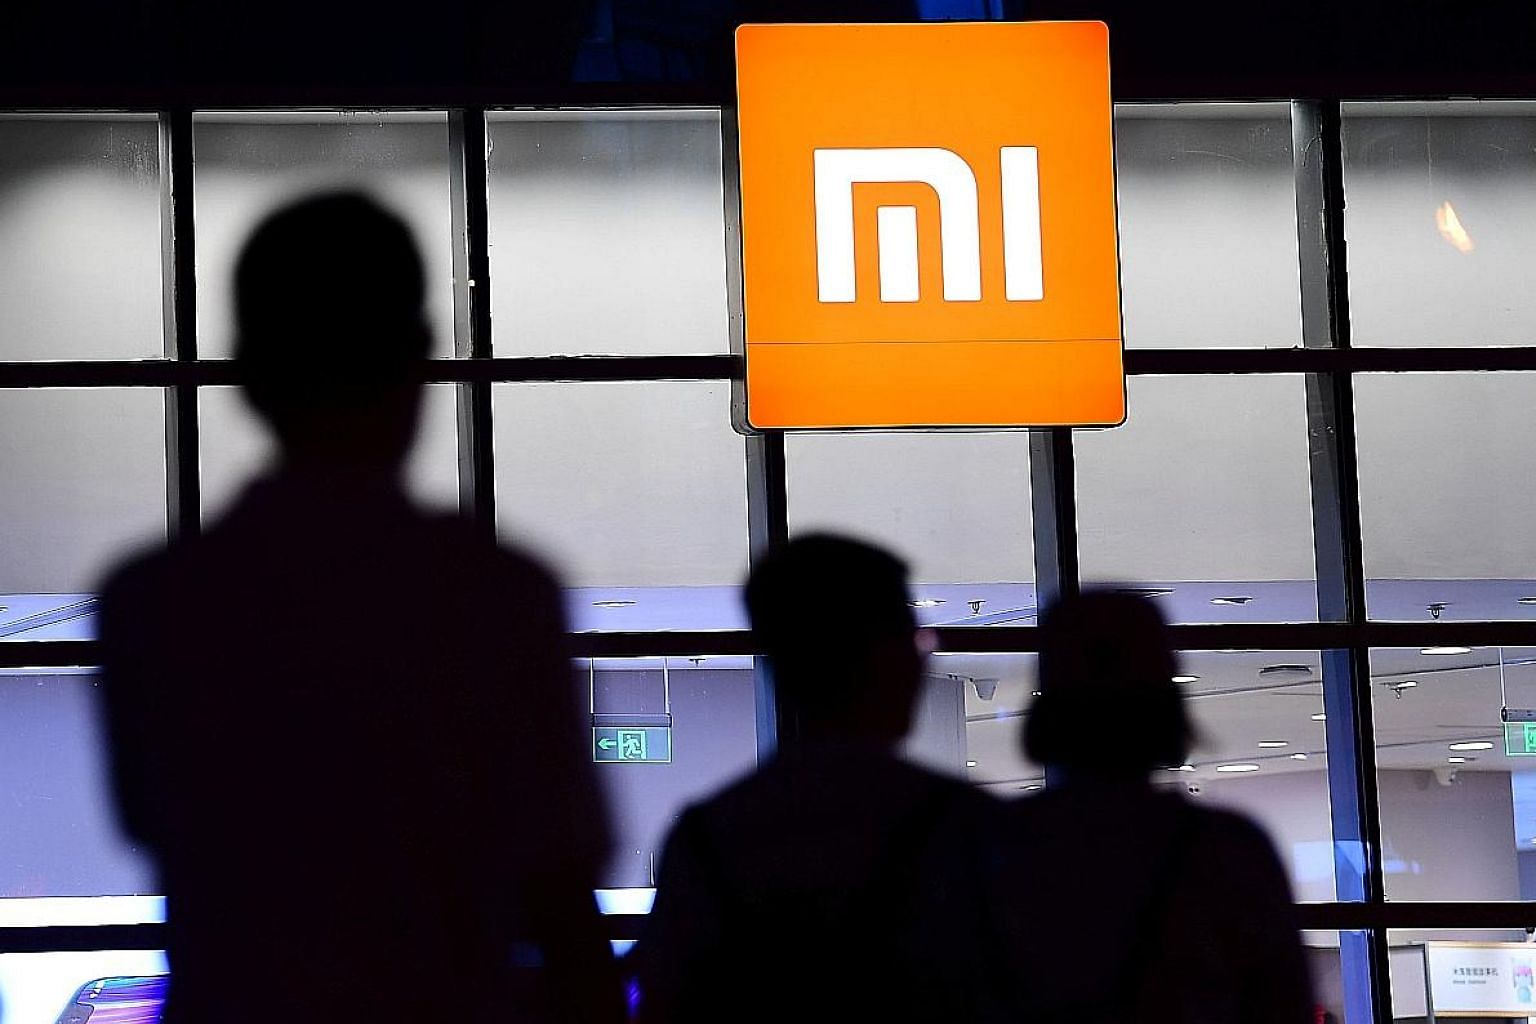 Sources say Xiaomi is using a range of US$55 billion (S$75 billion) to US$70 billion in its discussions with potential investors. The new valuation is far below the US$100 billion touted by sources earlier this year.